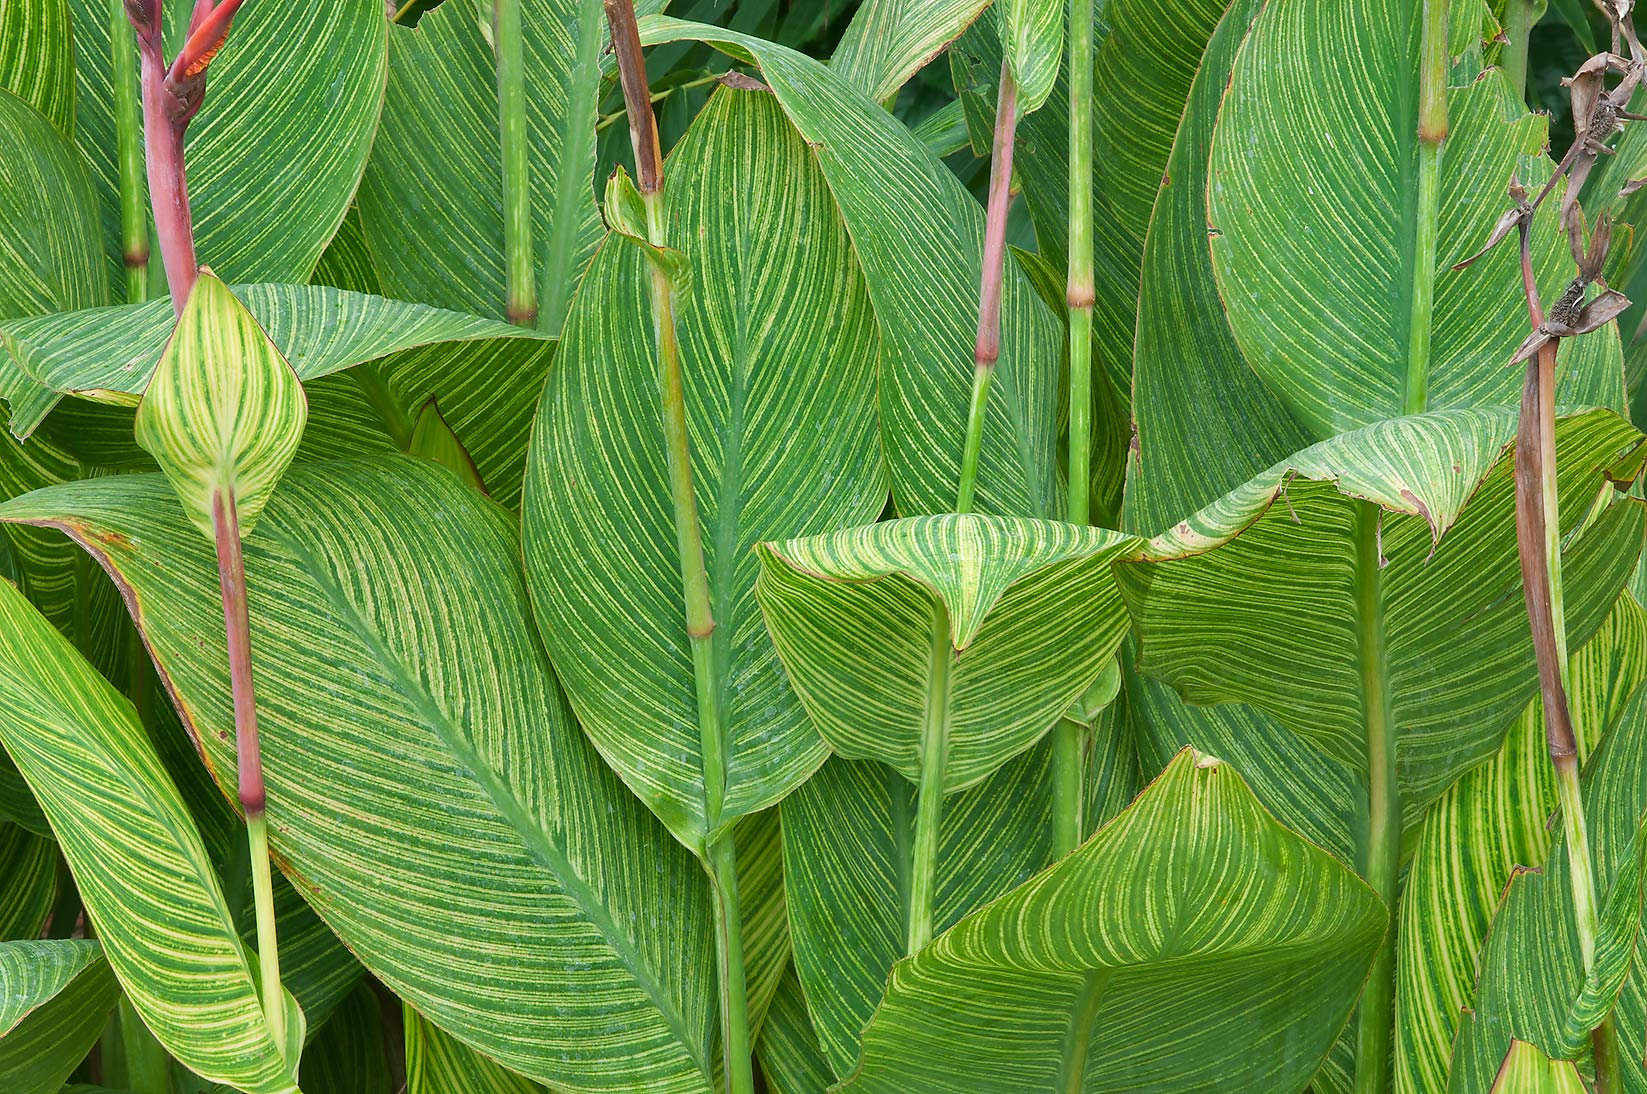 Canna leaves in Mercer Arboretum and Botanical Gardens. Humble (Houston area), Texas